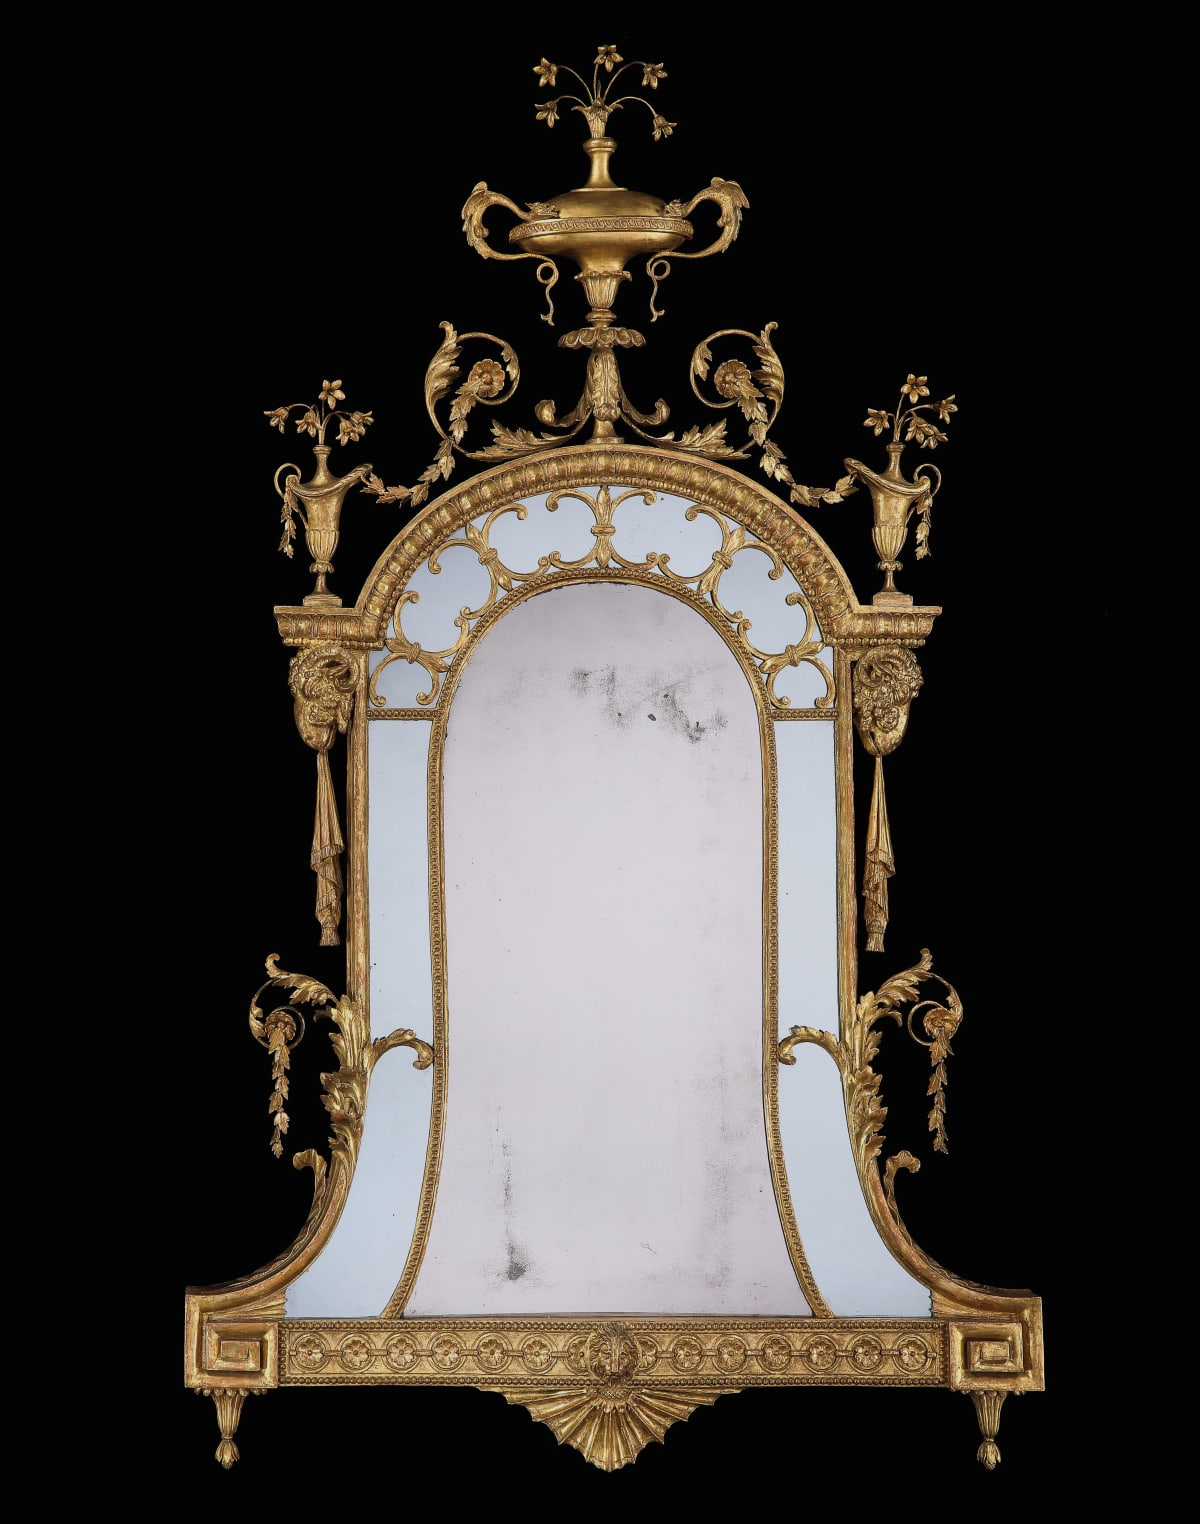 The H.J.Joel Mirror. A GEORGE III CARVED AND GILDED MIRROR, ENGLISH CIRCA 1780